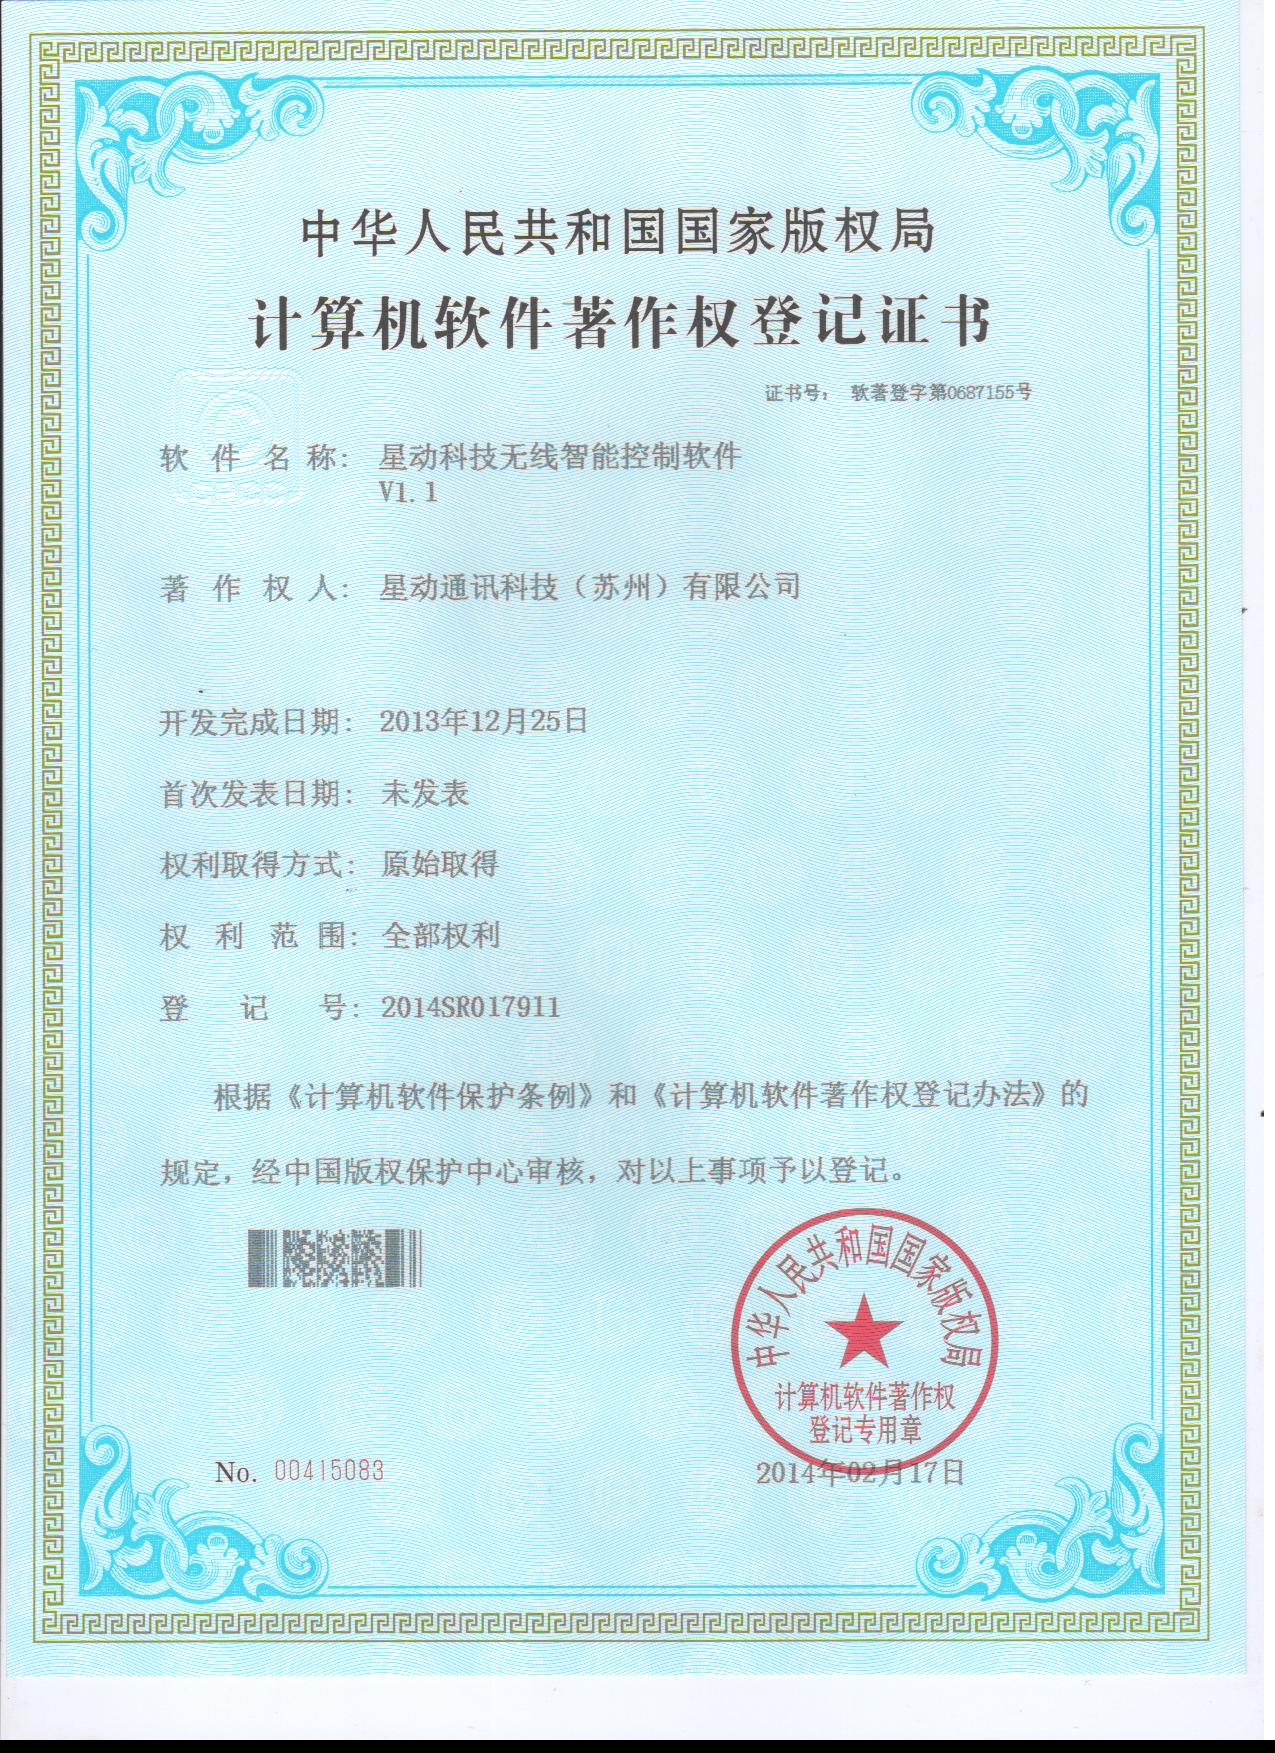 The Copyright certificate of computer software